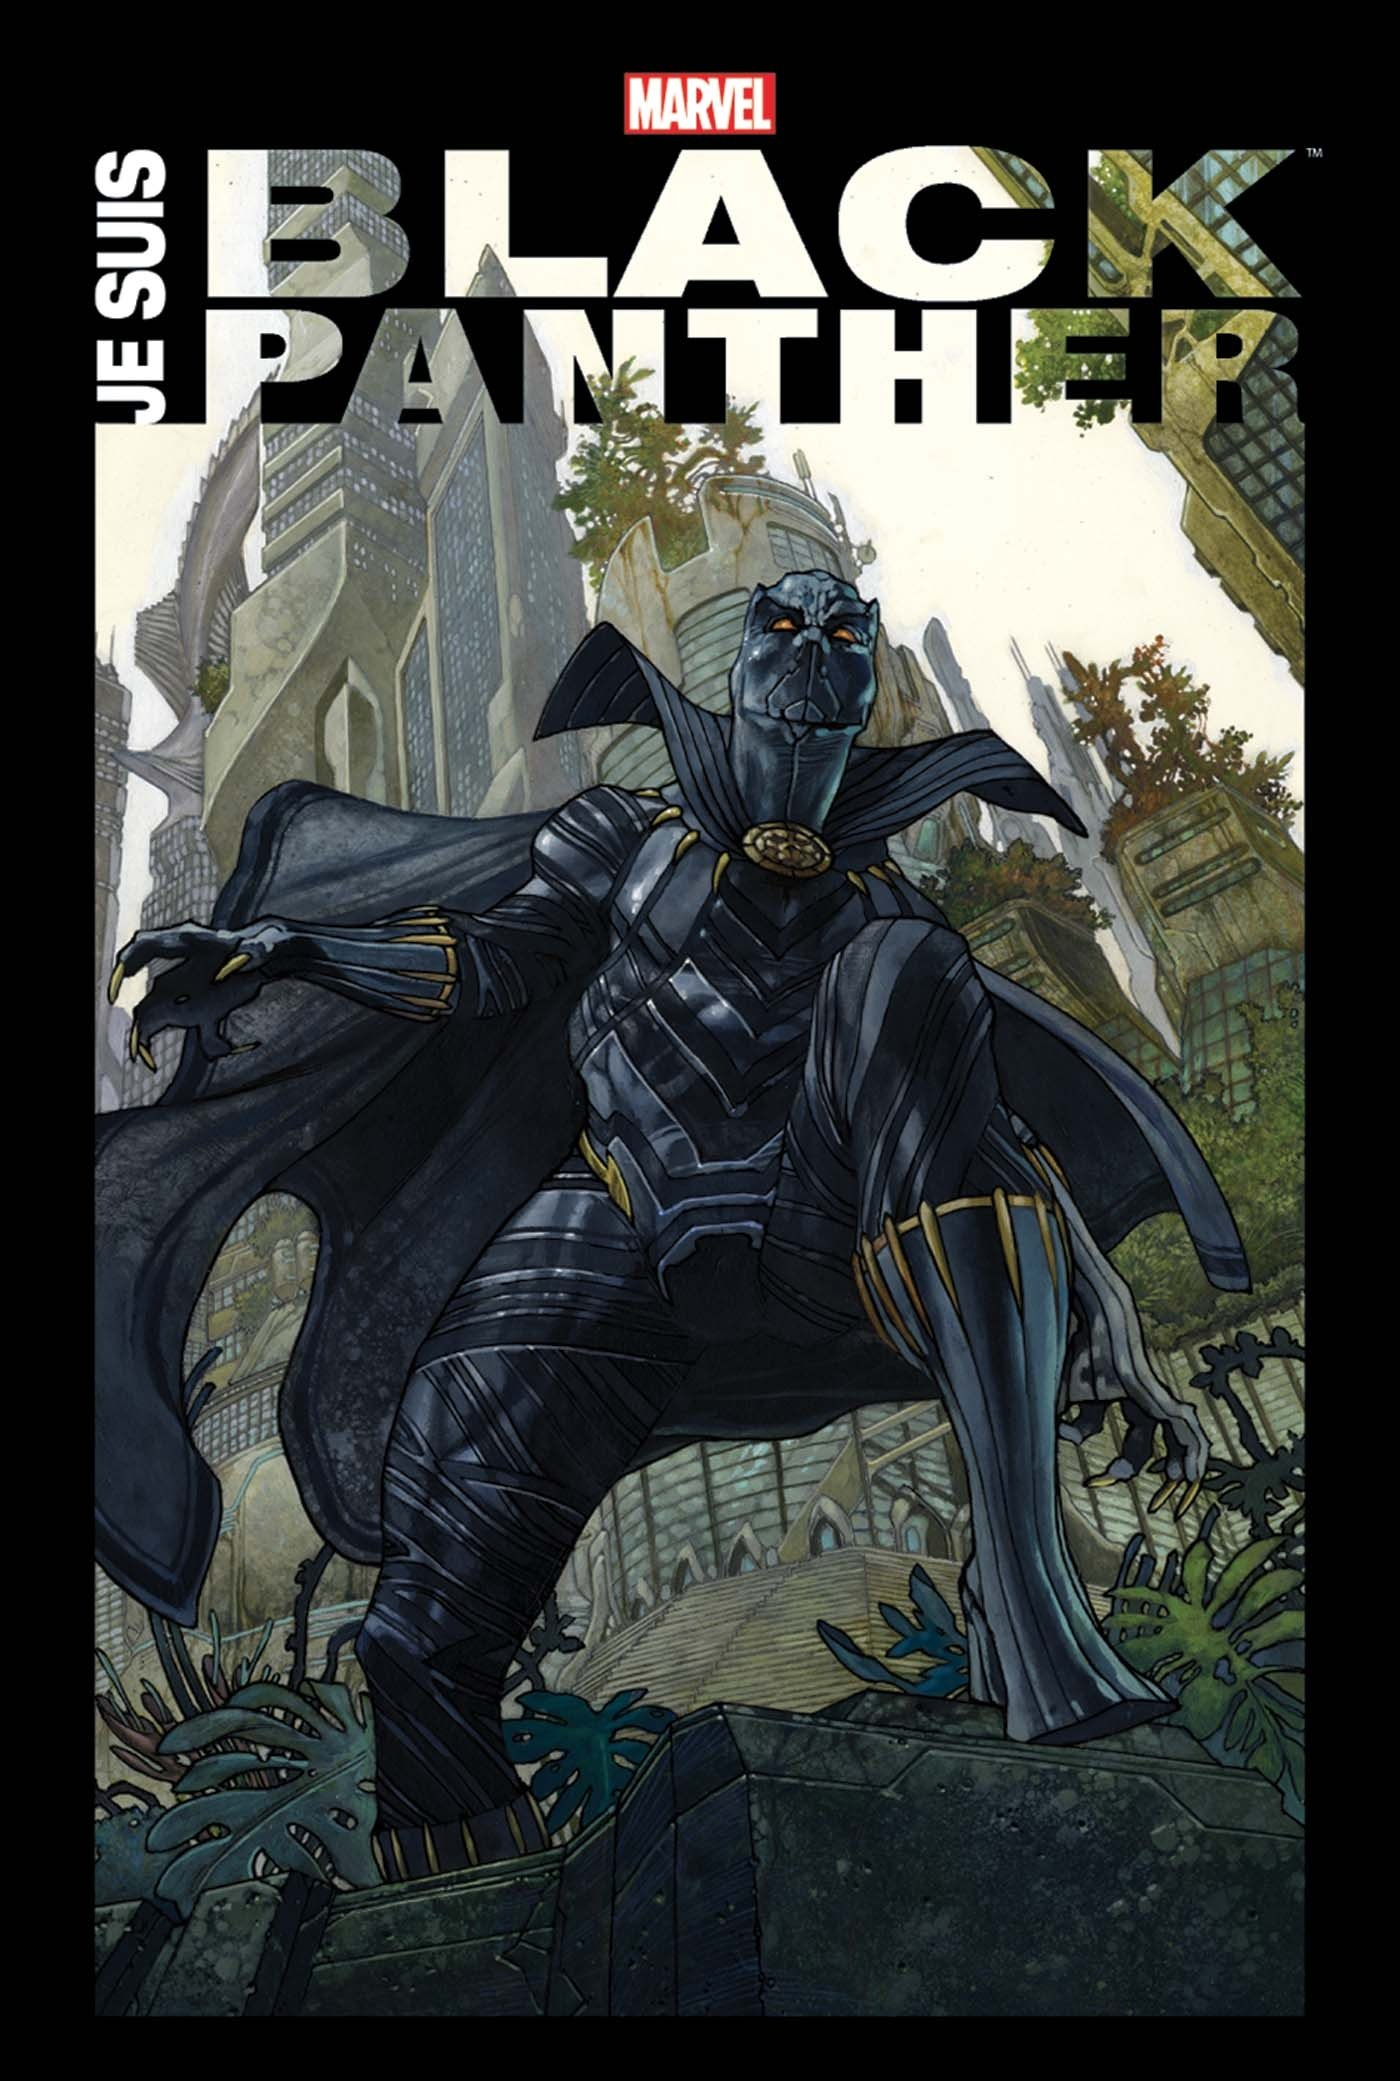 Je suis Black Panther, comics chez Panini Comics de Thomas, Hudlin, Mcgregor, Coates, Kirby, Byrne, Aaron, Priest, Claremont, Lee, Torres, Stelfreeze, Ferry, Bodenheim, Texeira, Andrews, Giacoia, Palo, Buckler, Eaton, Bianchi